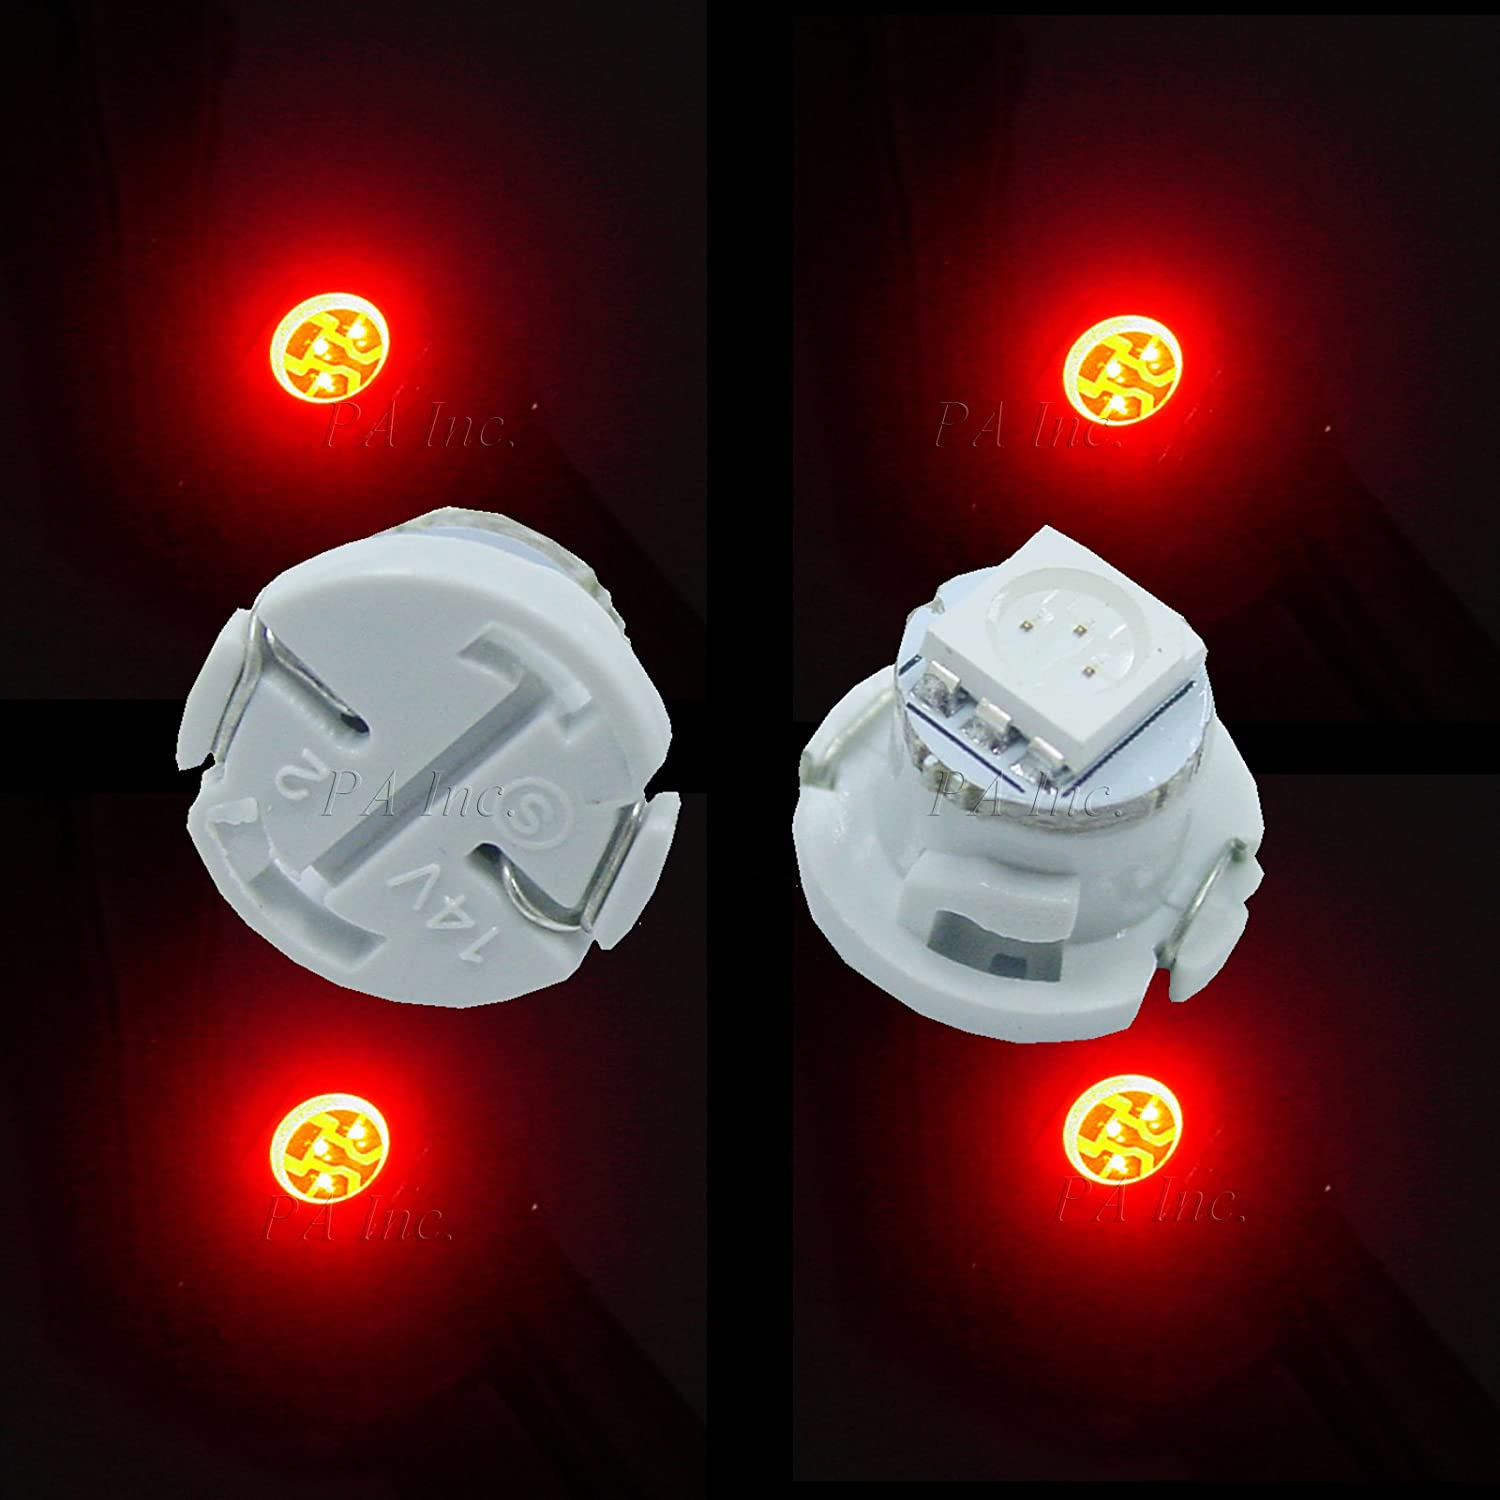 PA 20pcs T4.7 Car Dash Board Instrument LED Bulbs 5 color options 12v (WHITE) Per-Accurate Inc. All brands after market